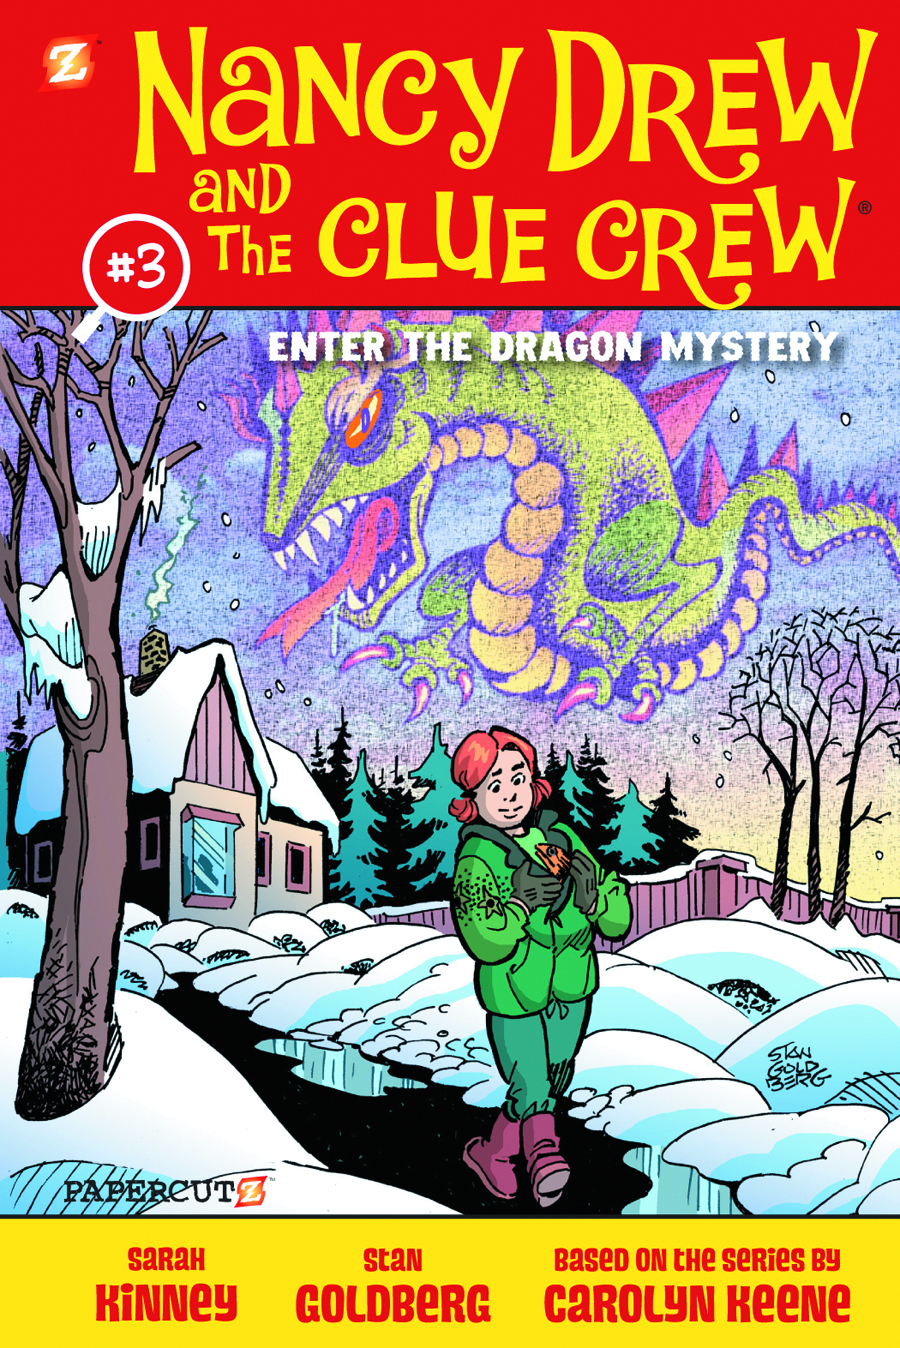 NANCY DREW & CLUE CREW GN VOL 03 DRAGON MYSTERY